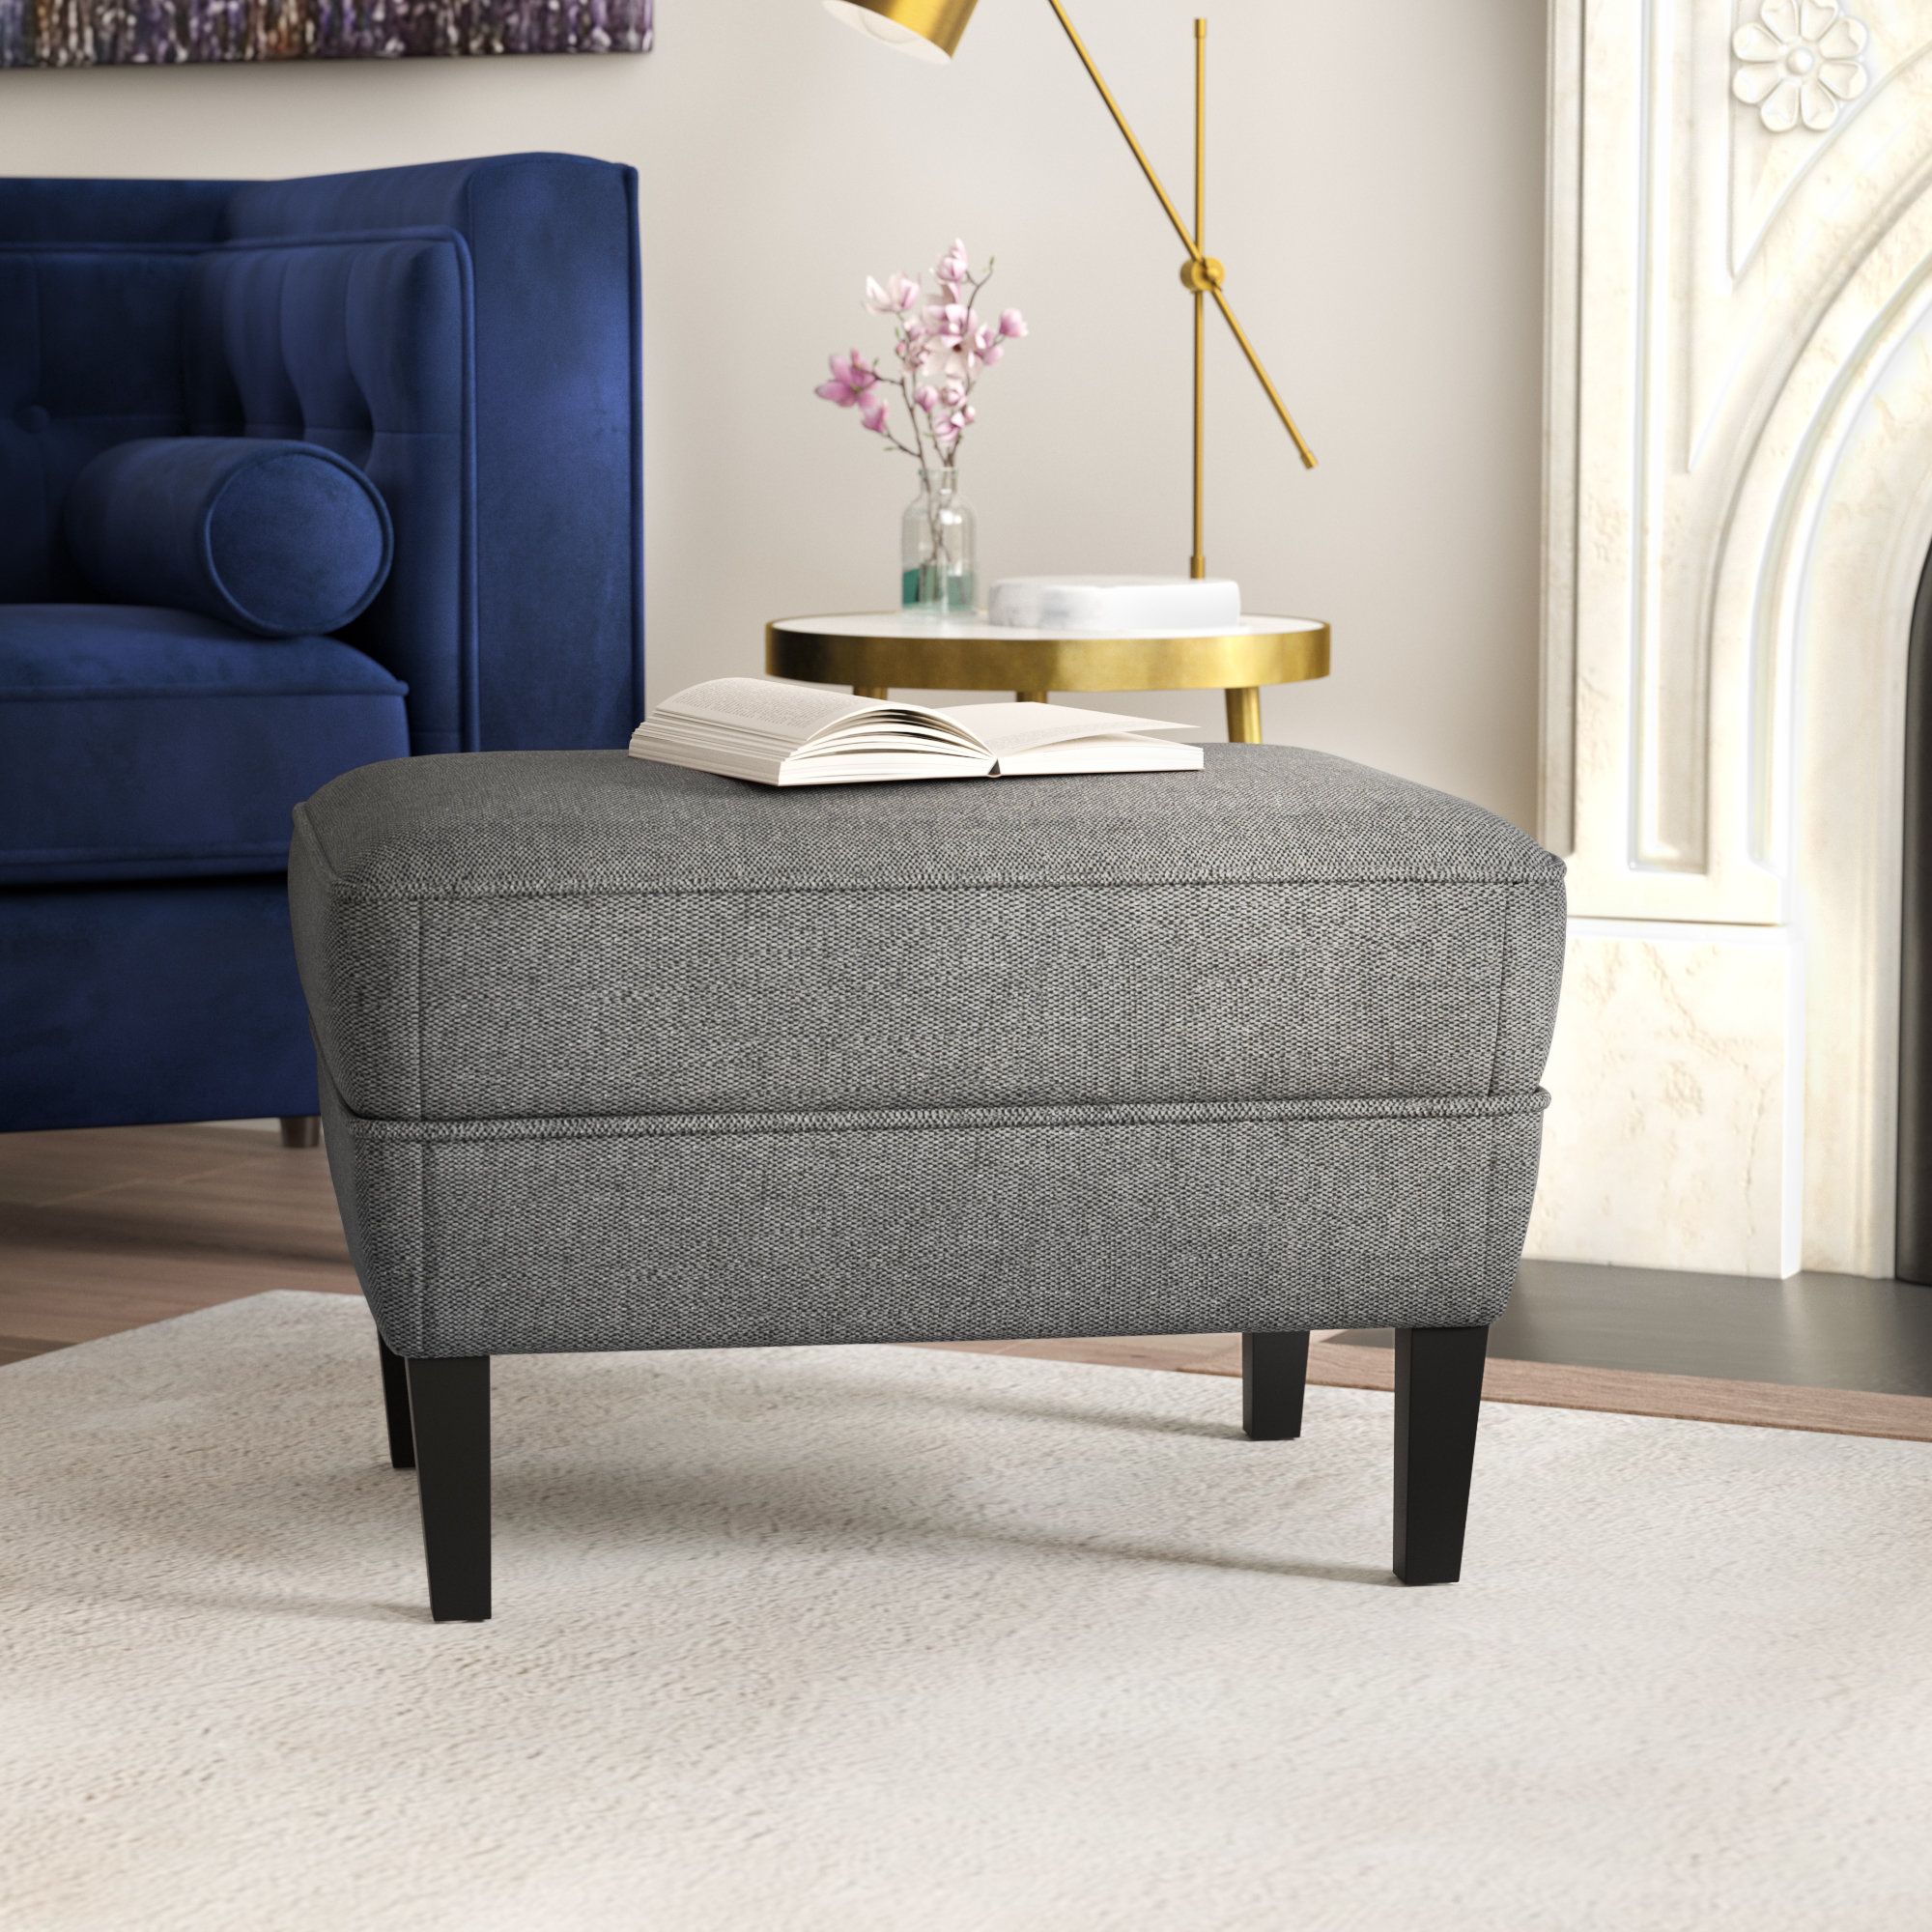 Aquarius Dark Grey Sofa Chairs Within Most Up To Date Willa Arlo Interiors Aquarius Ottoman & Reviews (View 4 of 20)